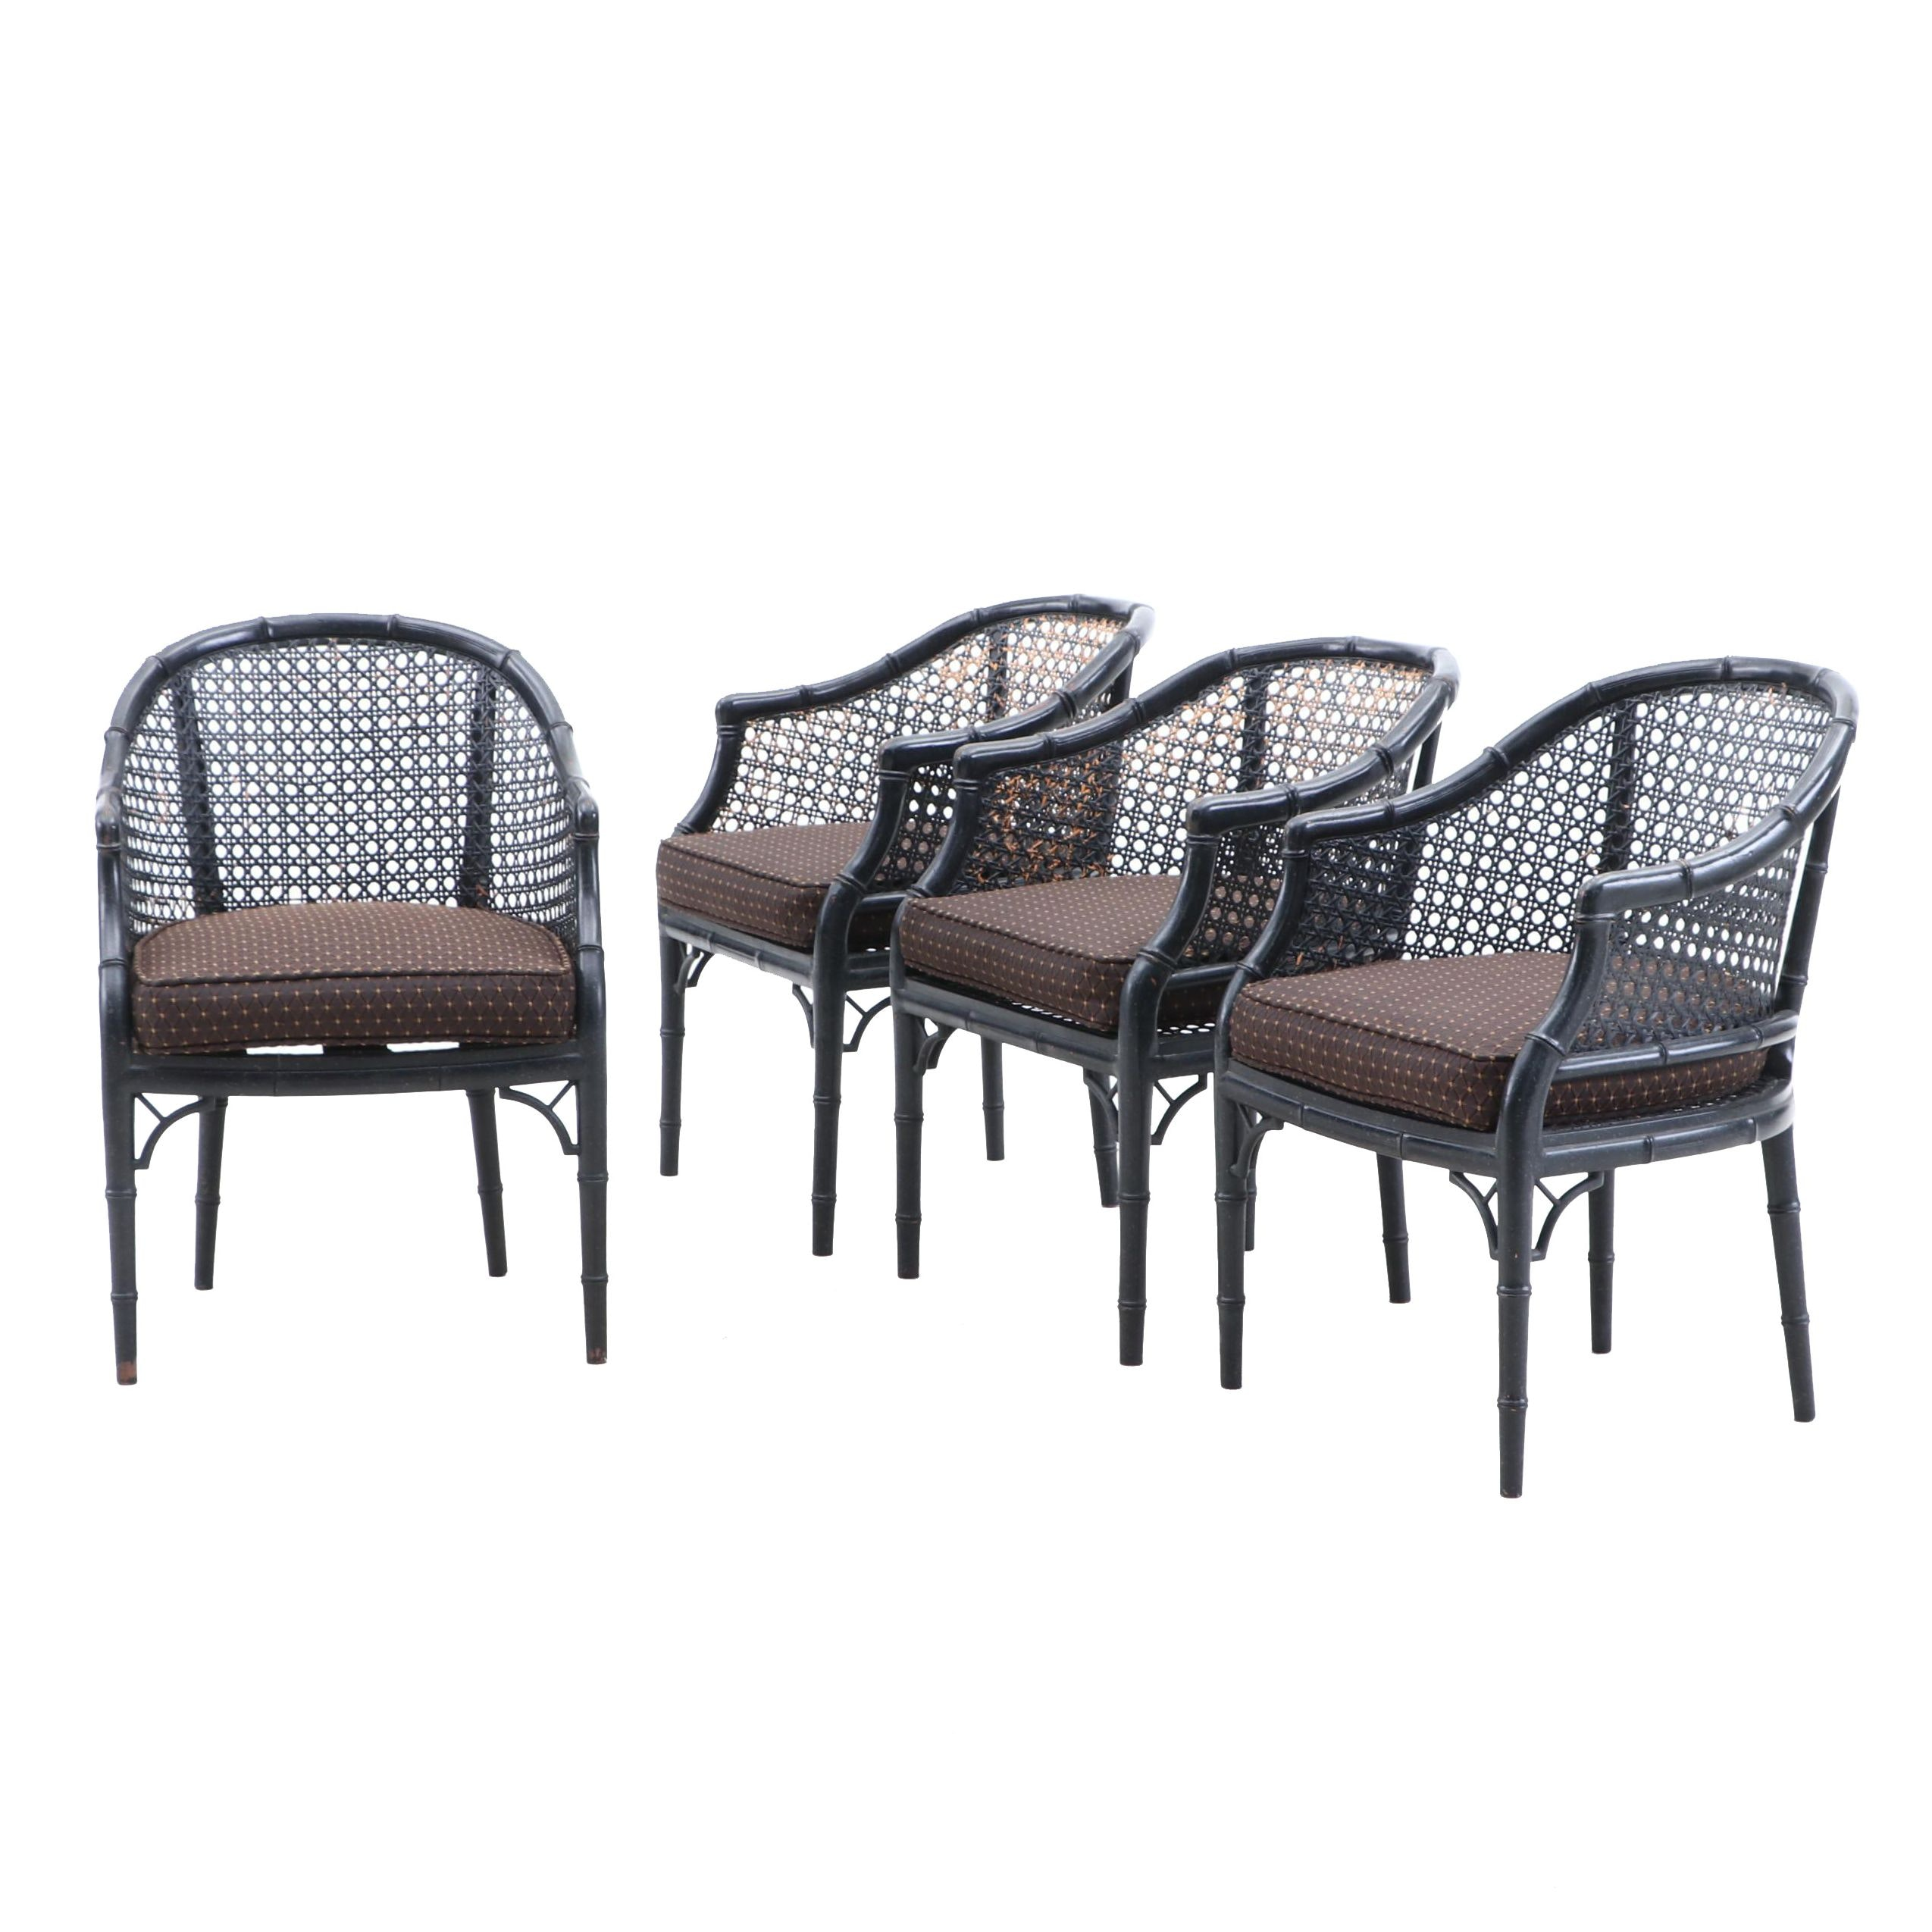 Bamboo and Cane Ebonized Finish Armchairs